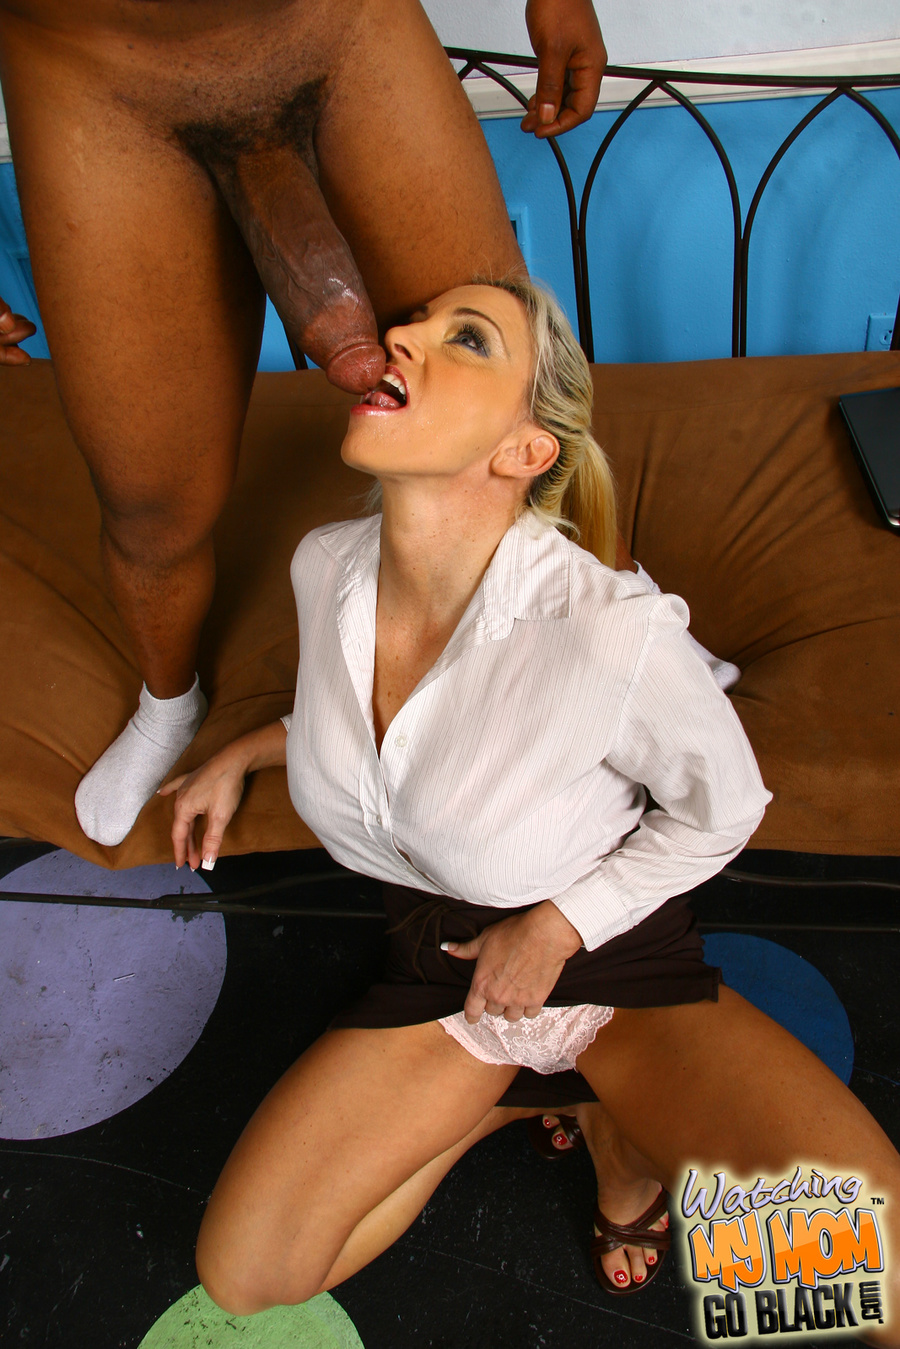 Cala Craves spreads her ass and waits for her milkshake to pour on her ass!